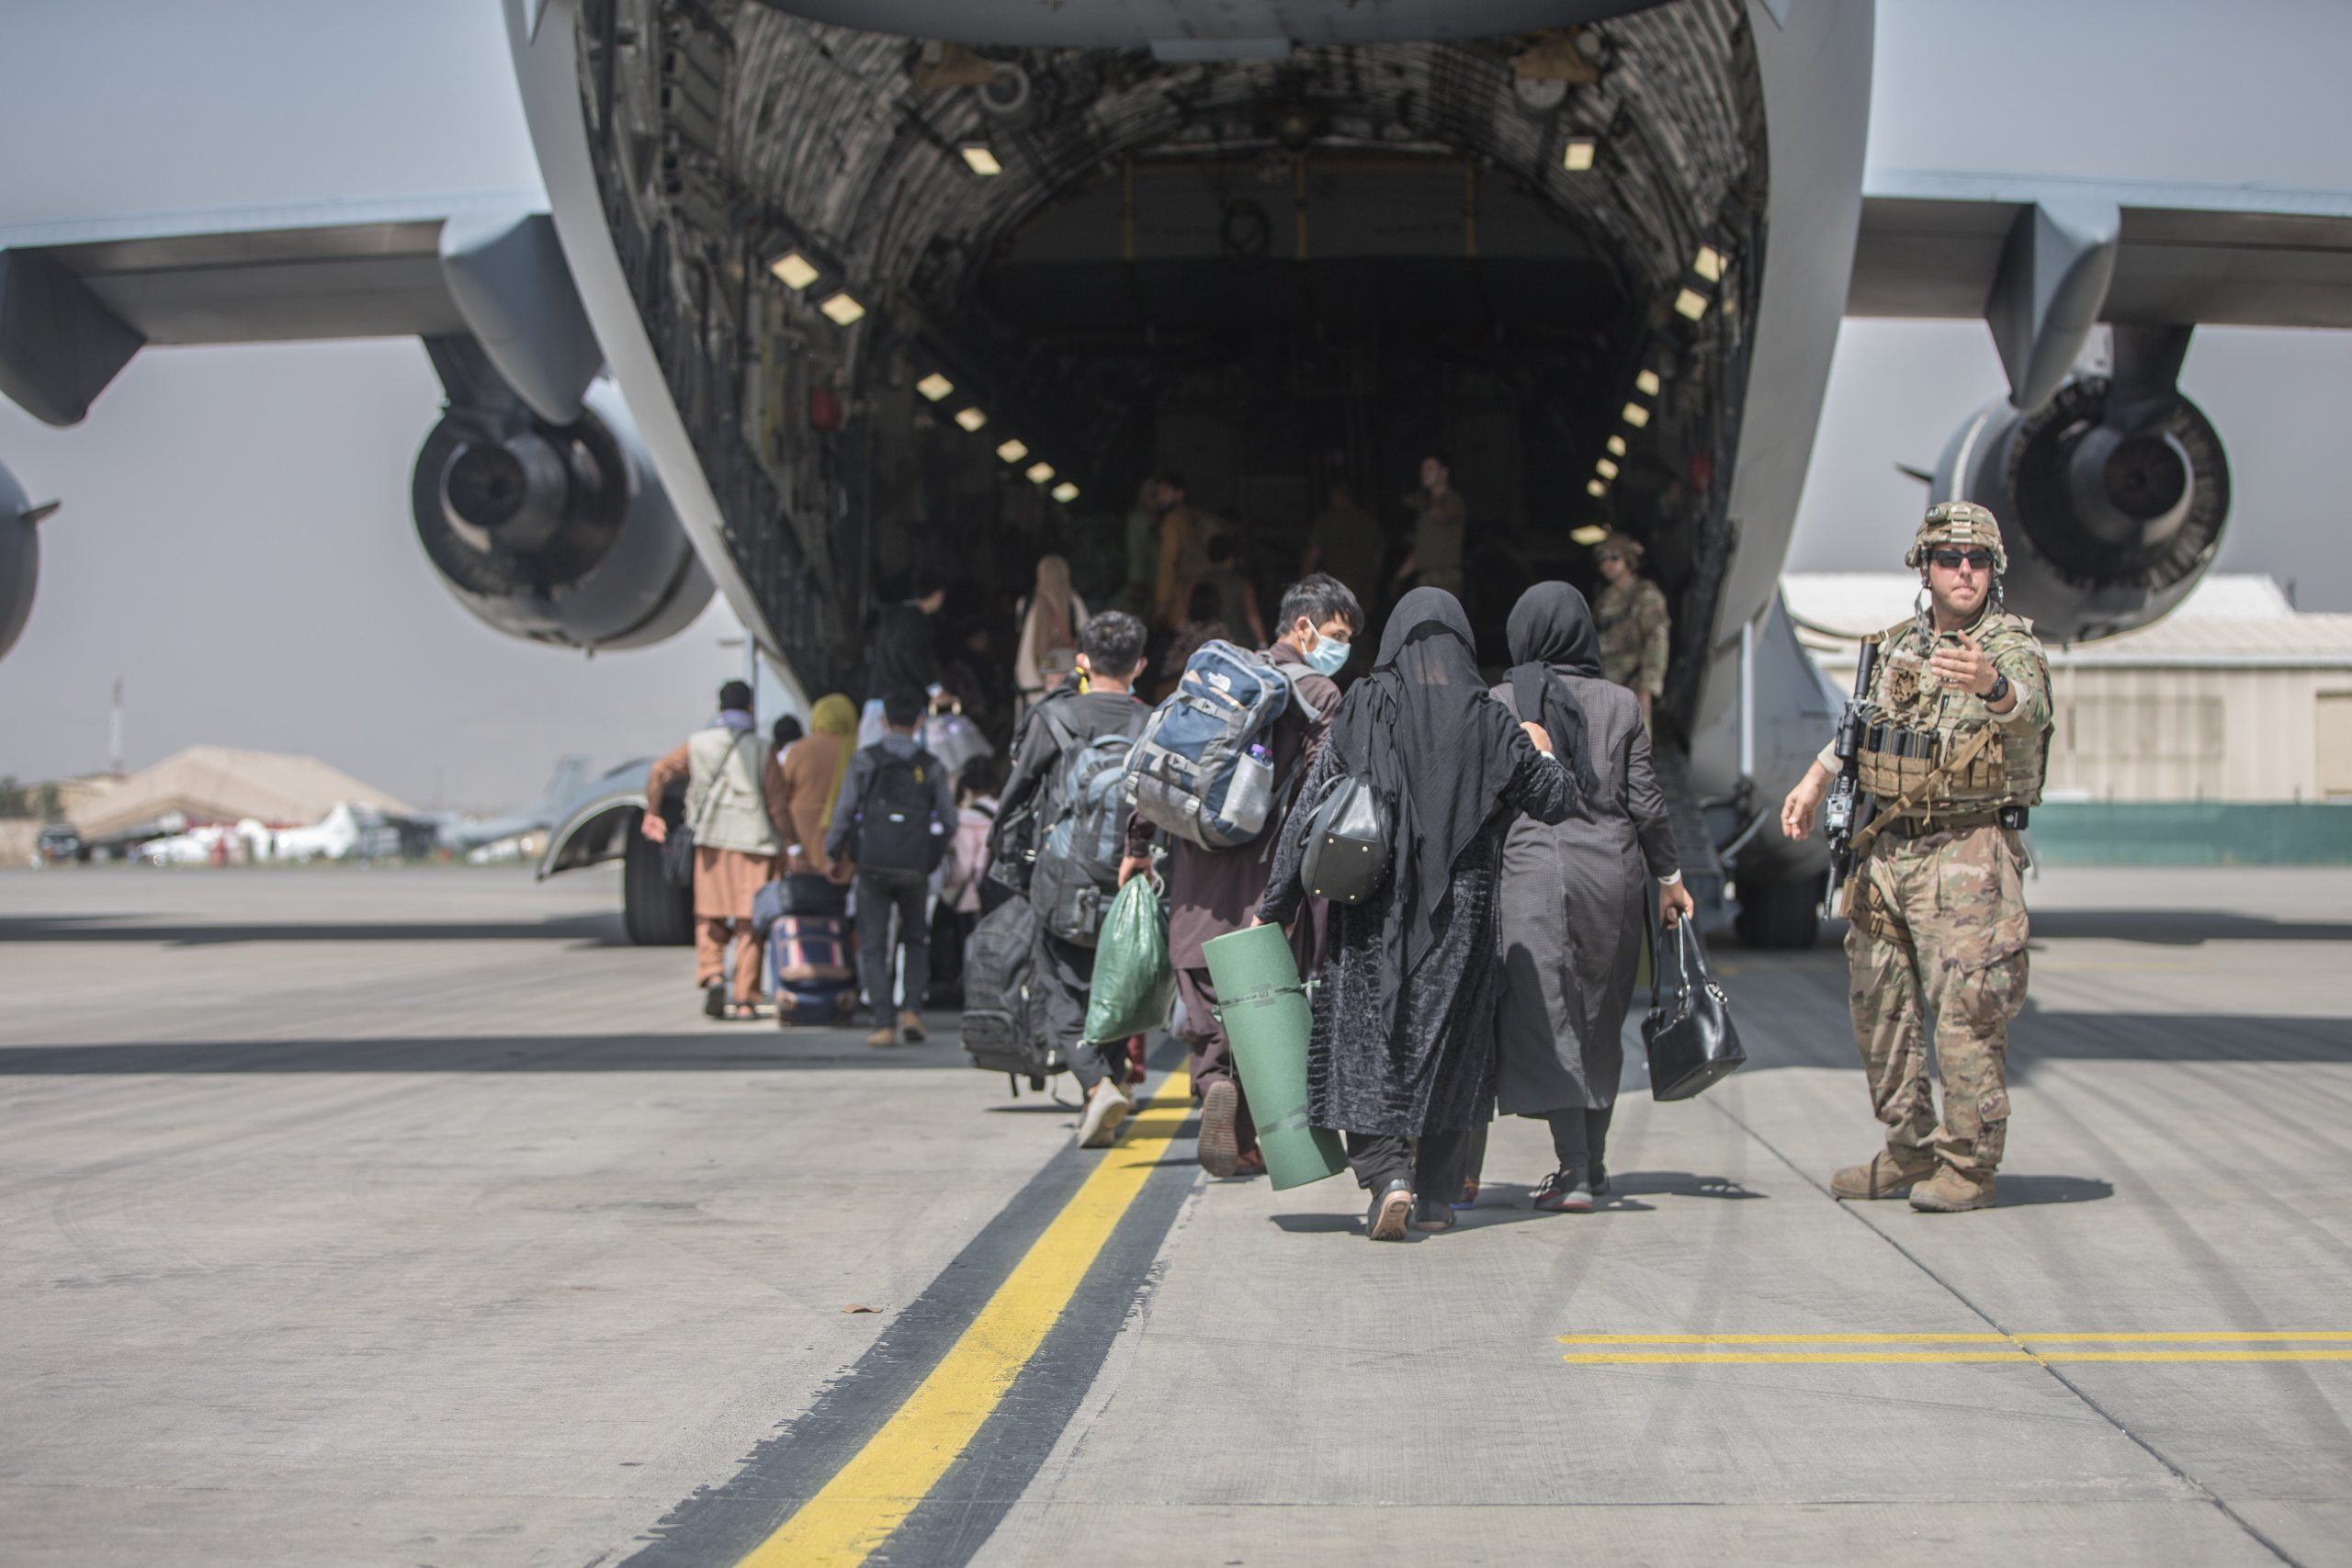 240 Afghan Refugees Rescued and to be Quarantined at Transit Zone